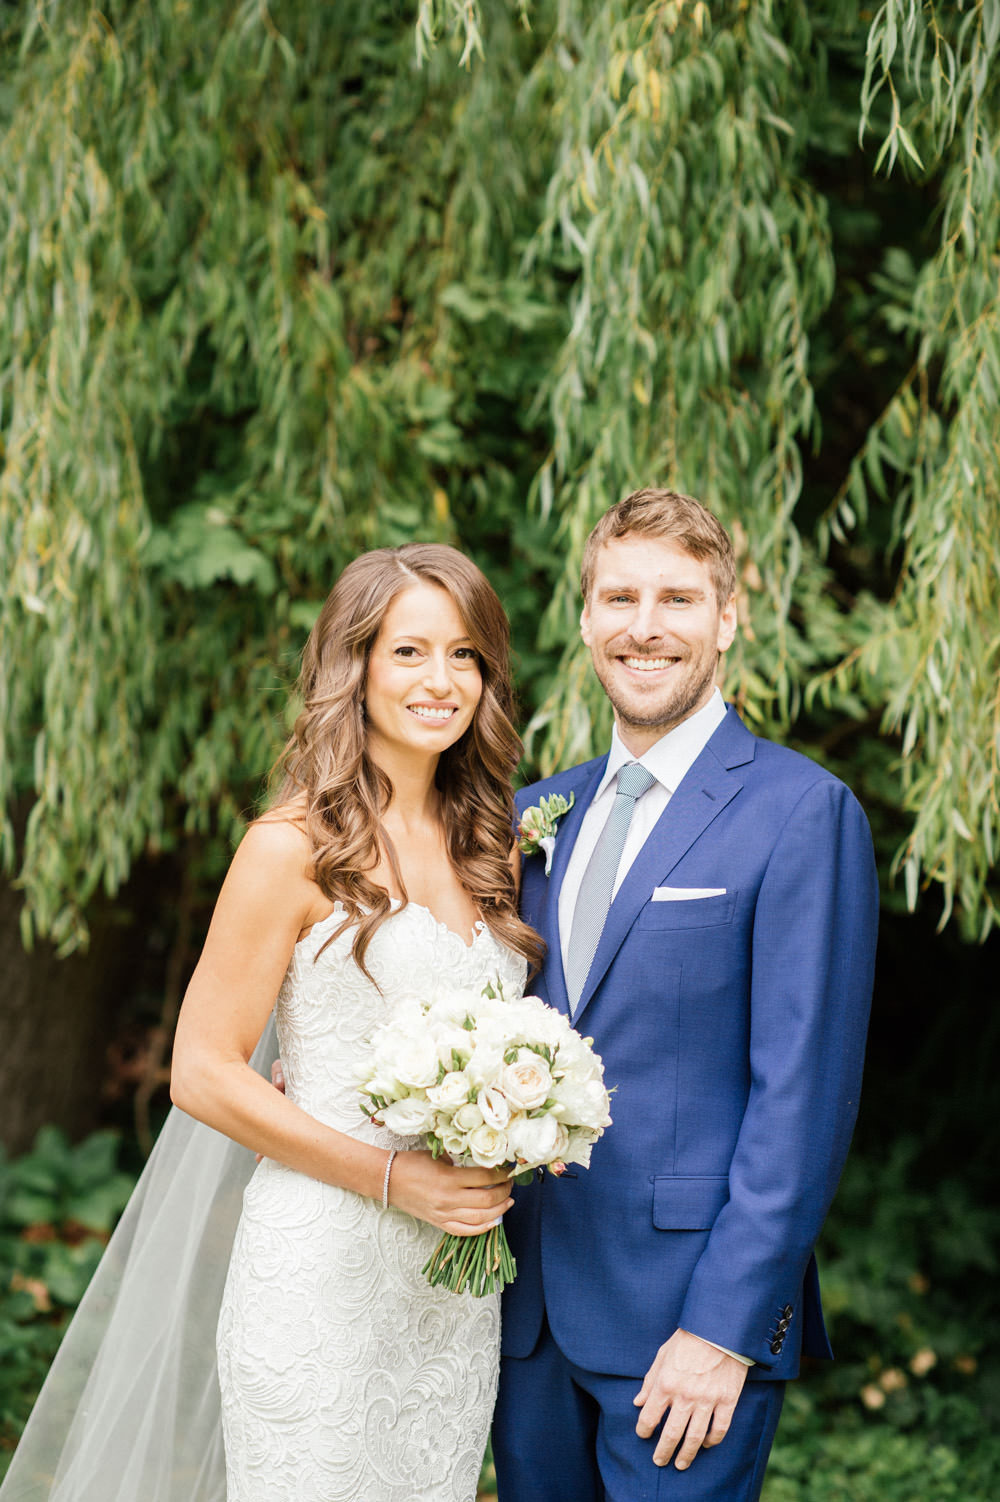 Shannon & Mark were married in the Adelaide Hills